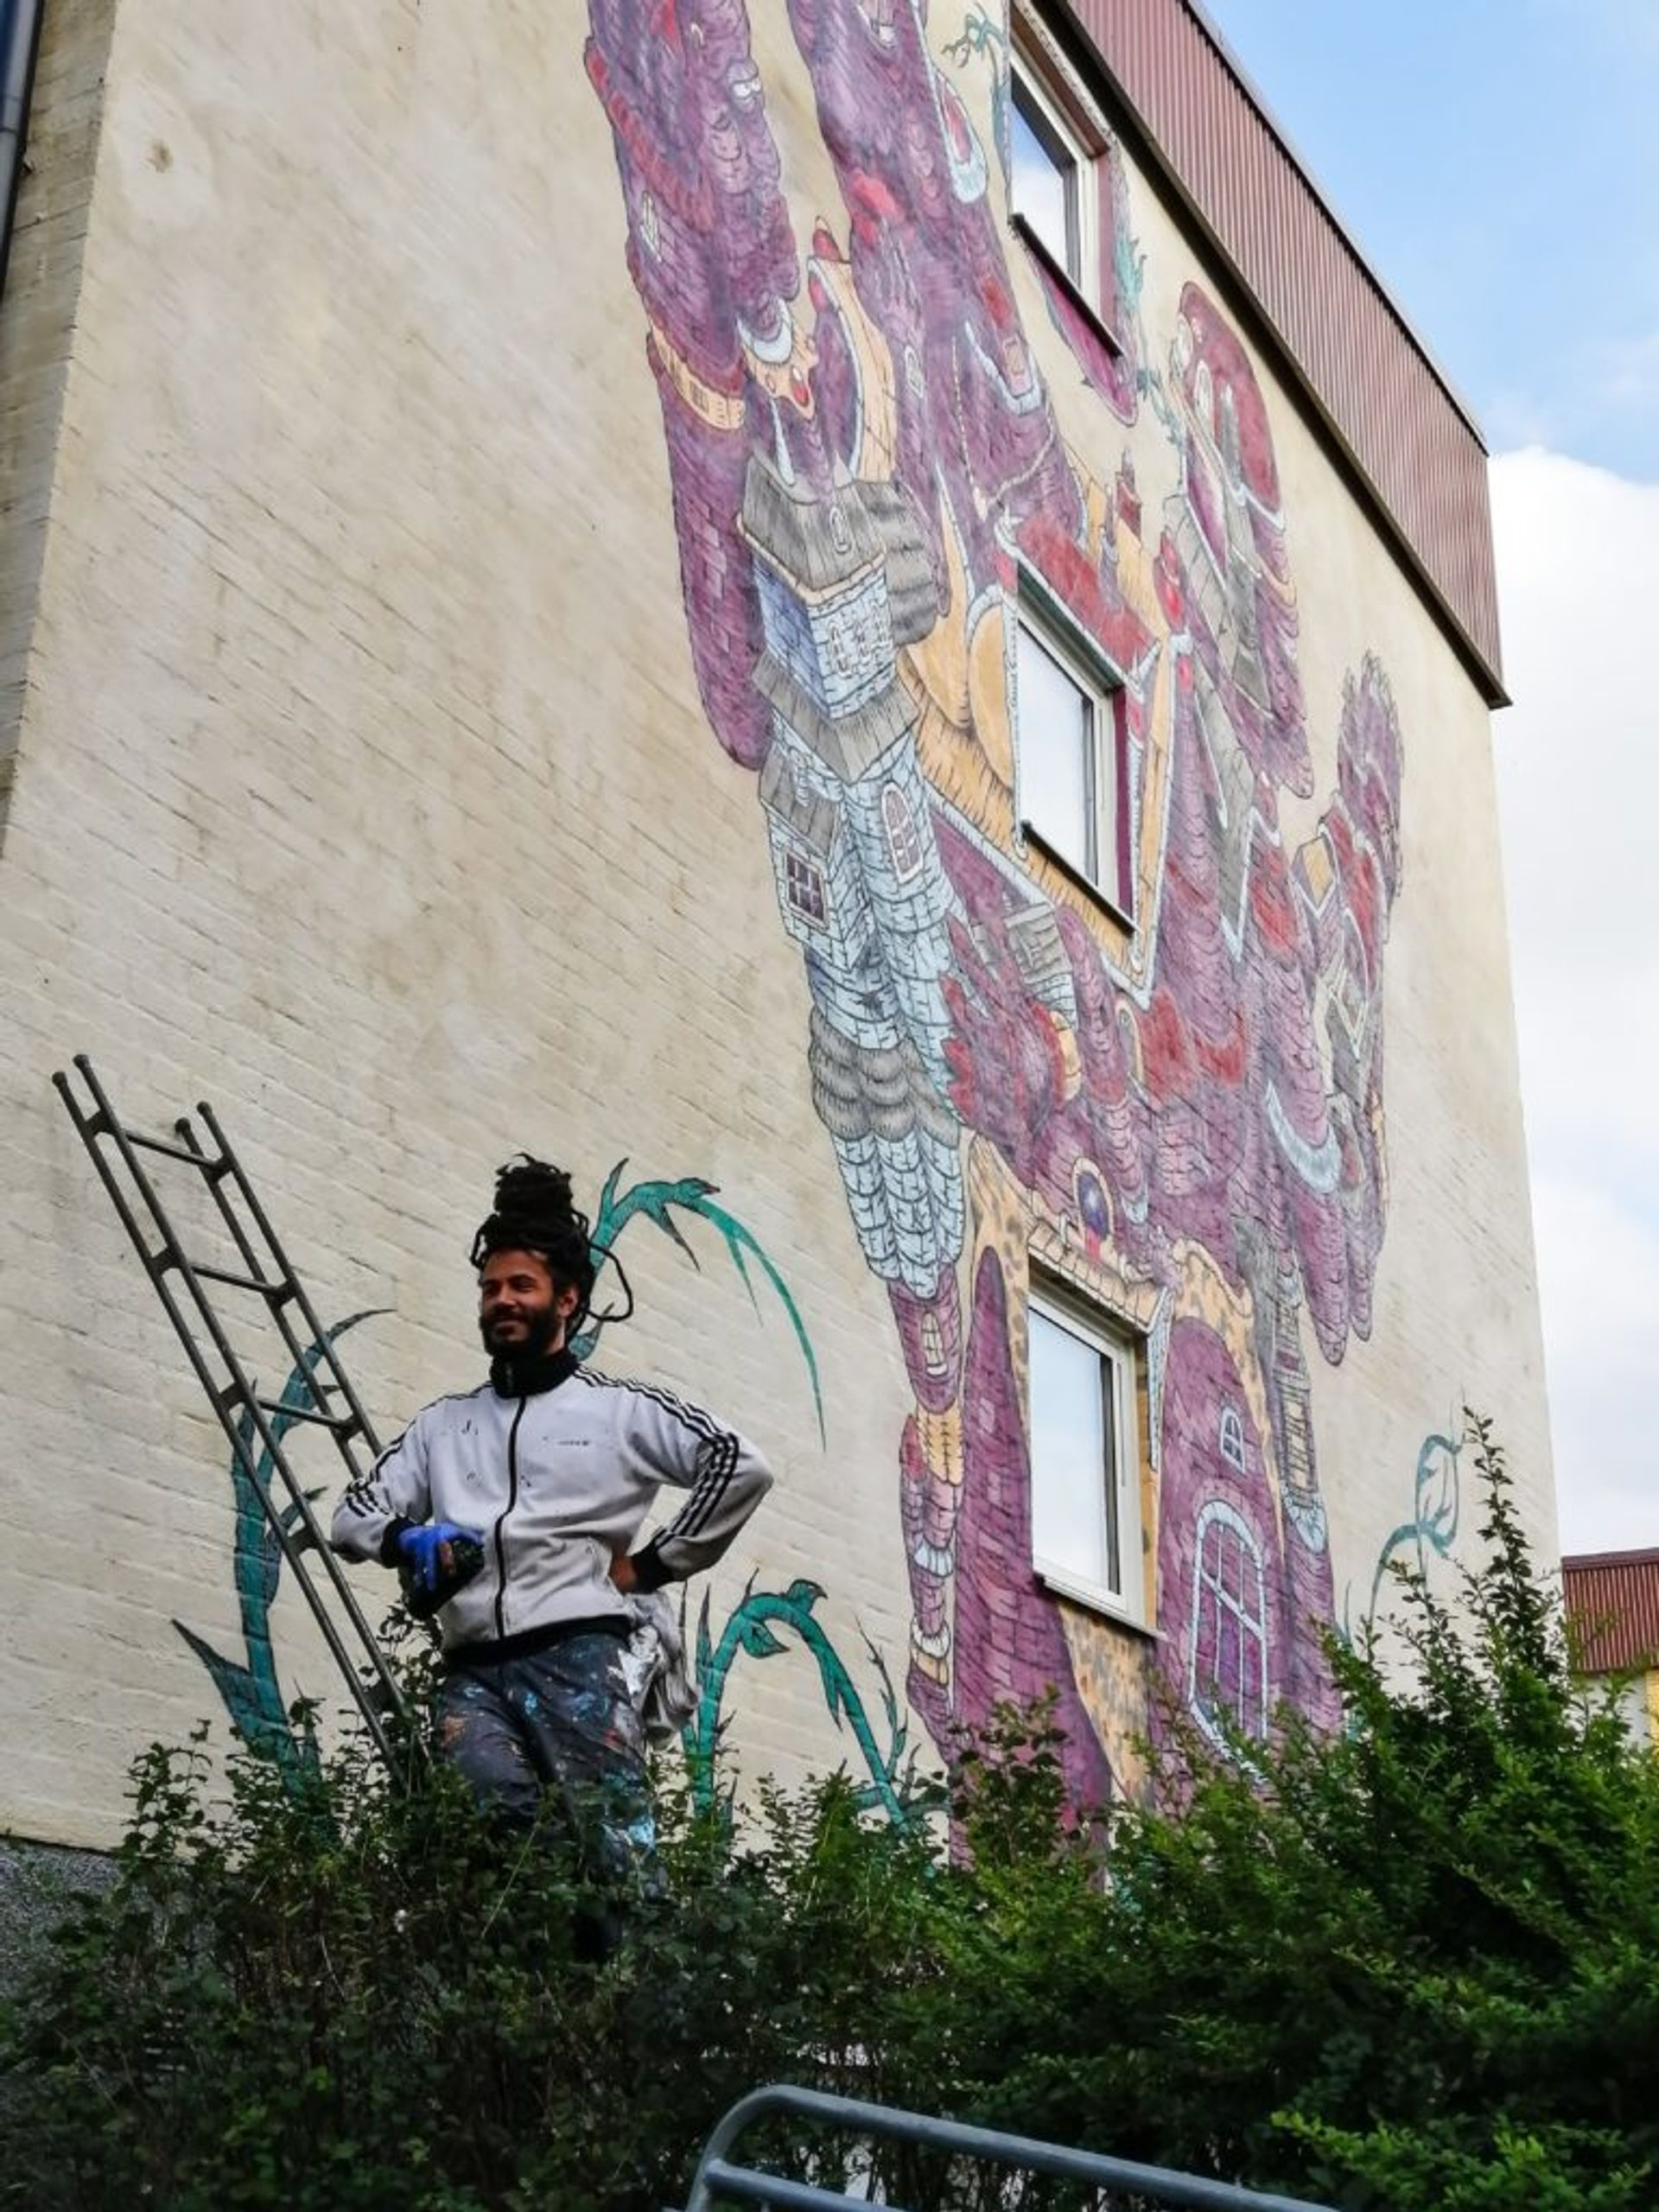 An artist stands on a ladder in front of the mural he is painting.